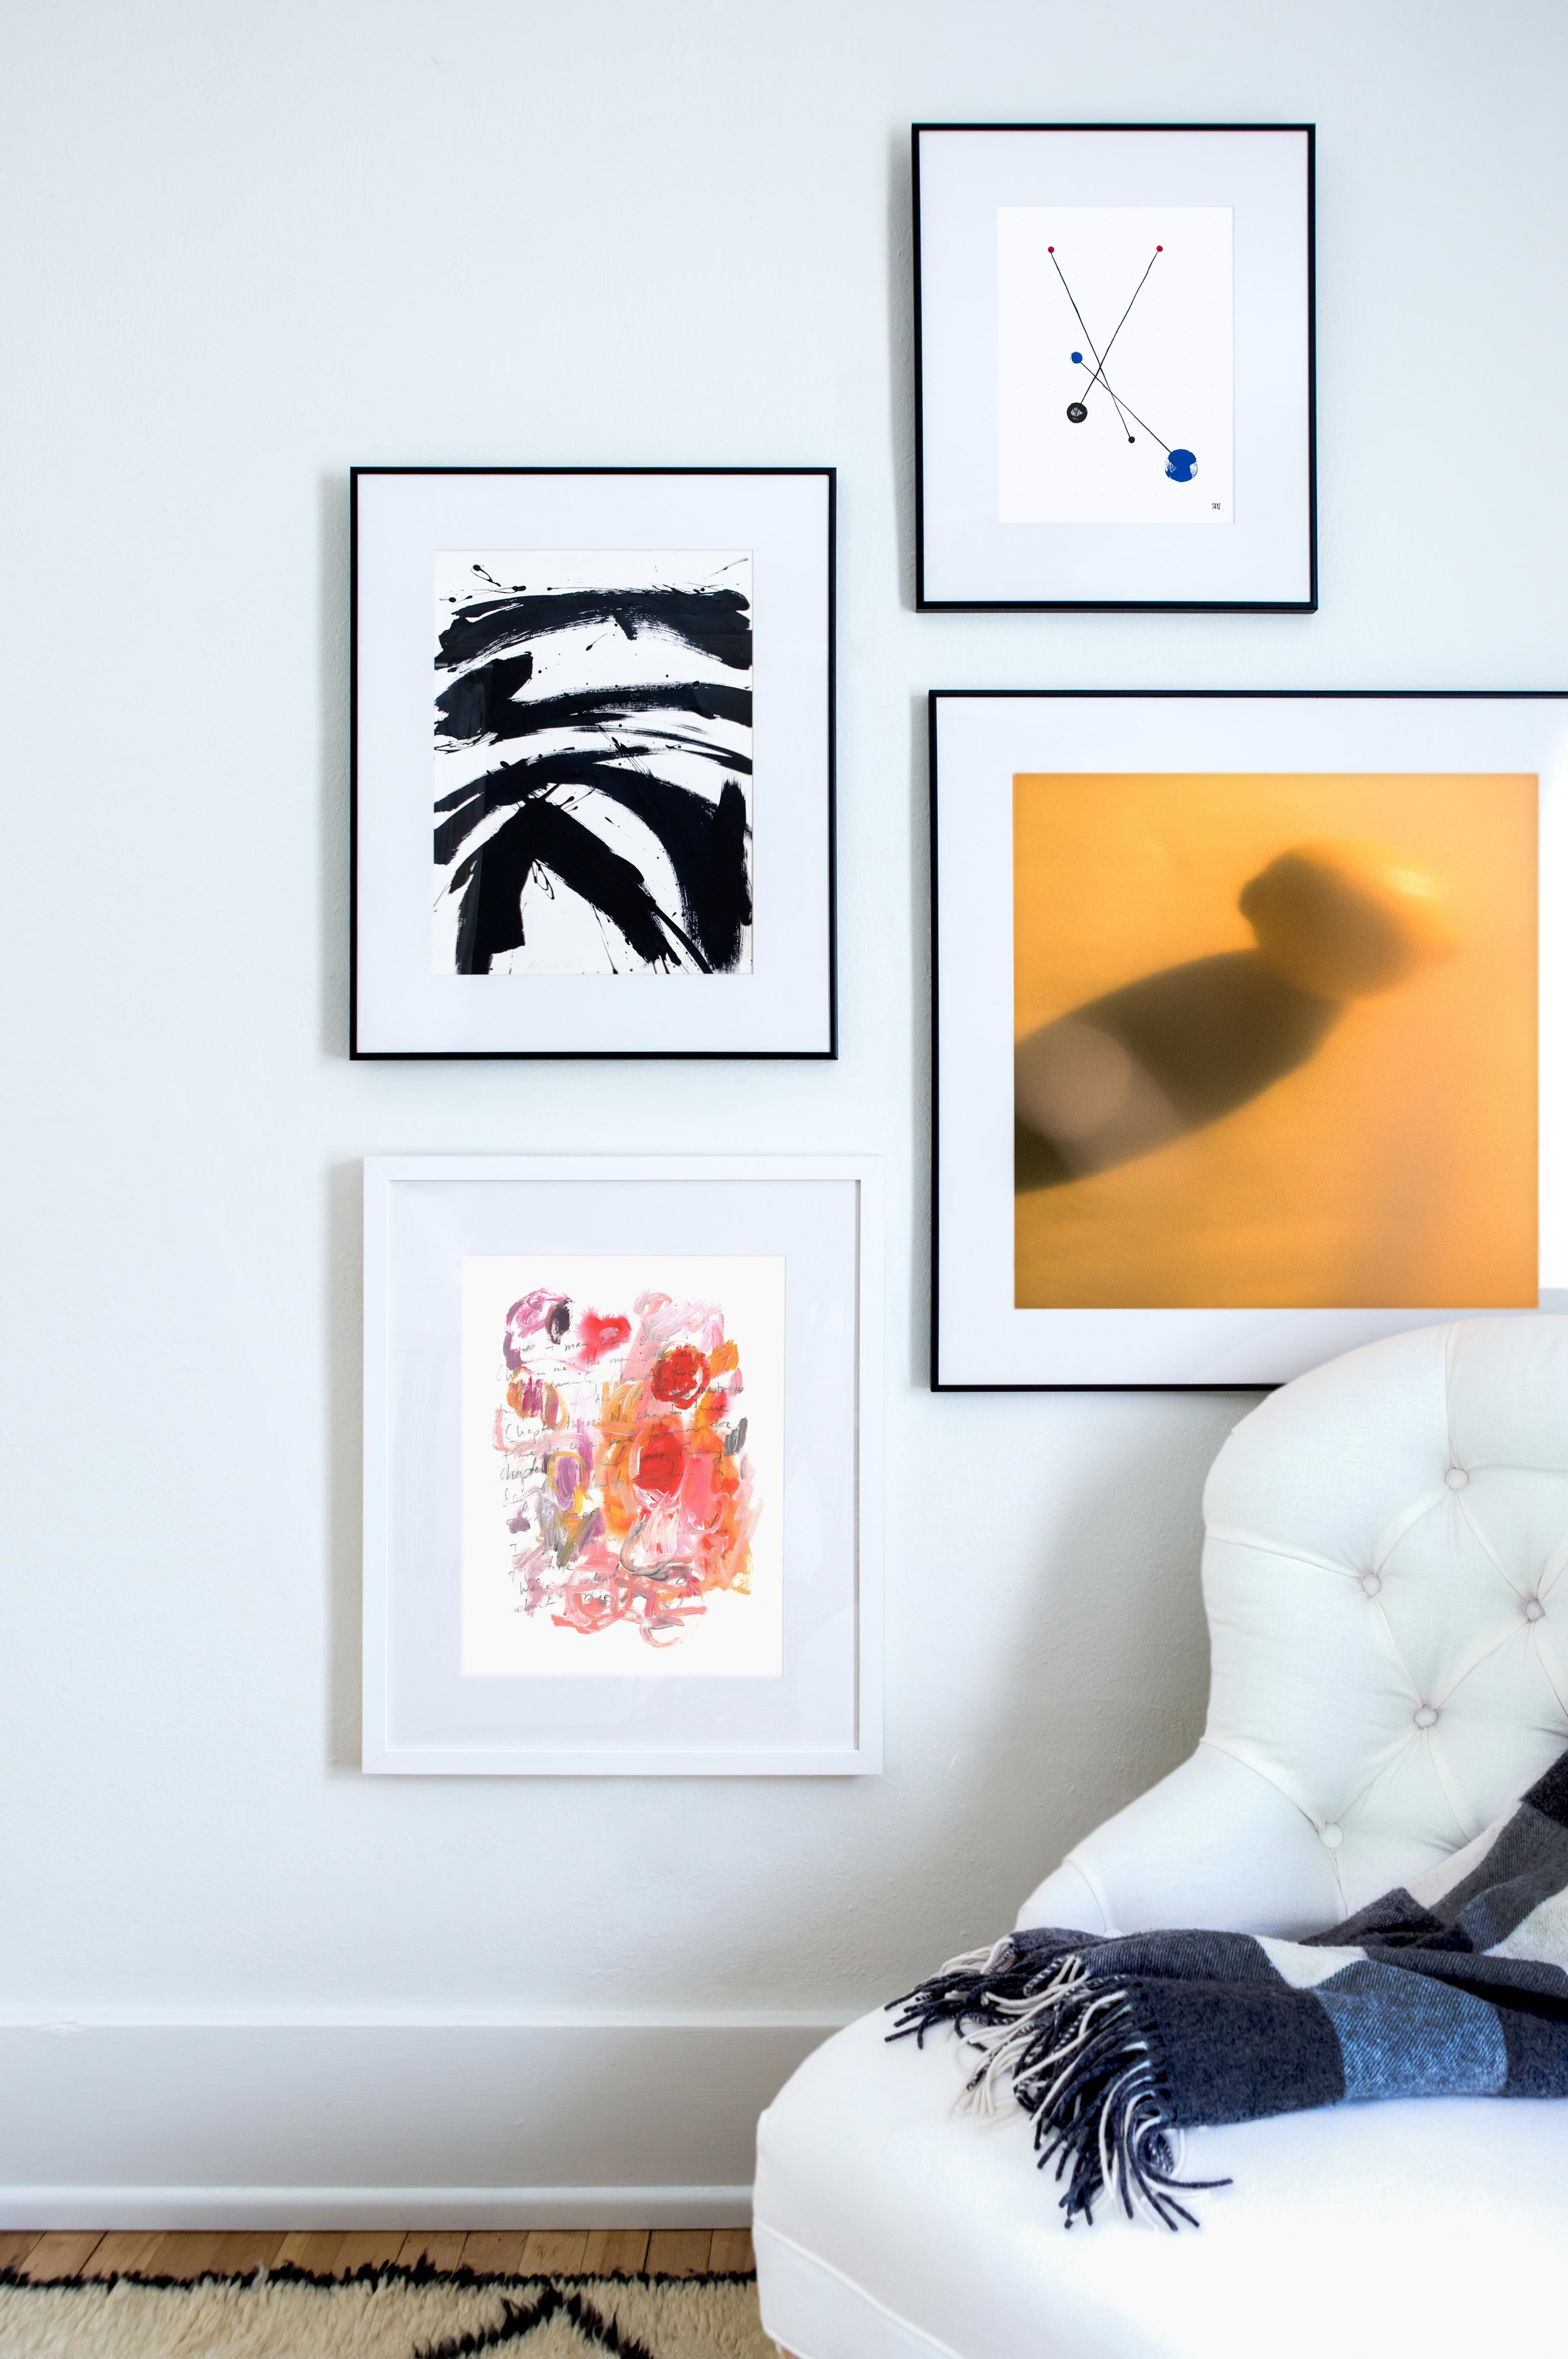 (From top to bottom)  2 black 2 red 2 blue  by  Skye Schuchman ,  B + W #3  by  Jill Sykes ,  Citrus  by  Erik Melvin , and  Chapter Three: no chapter three.  by  Kelly Witmer . Photo by  Marta X. Perez  for Artfully Walls.